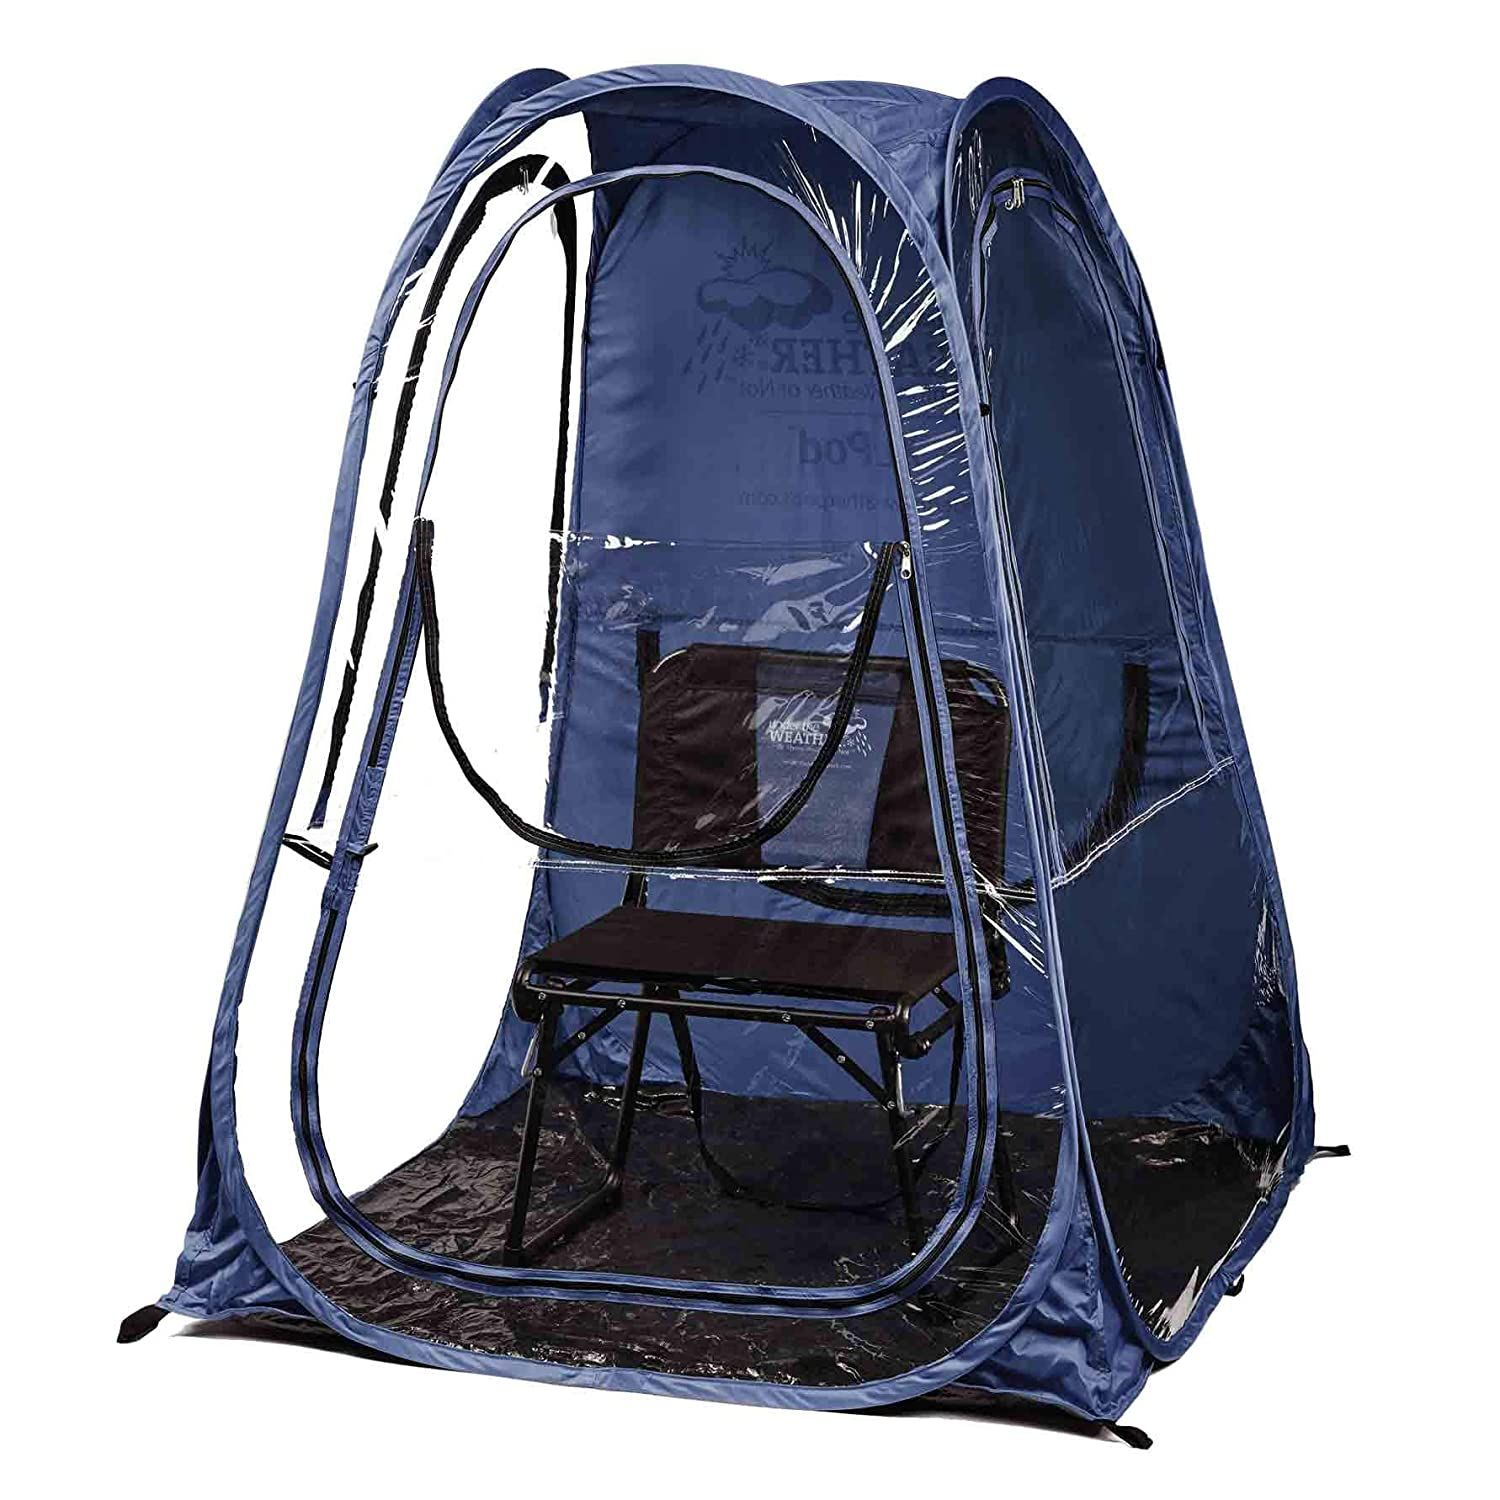 Under the Weather XLPod 1Person Popup Weather Pod. The